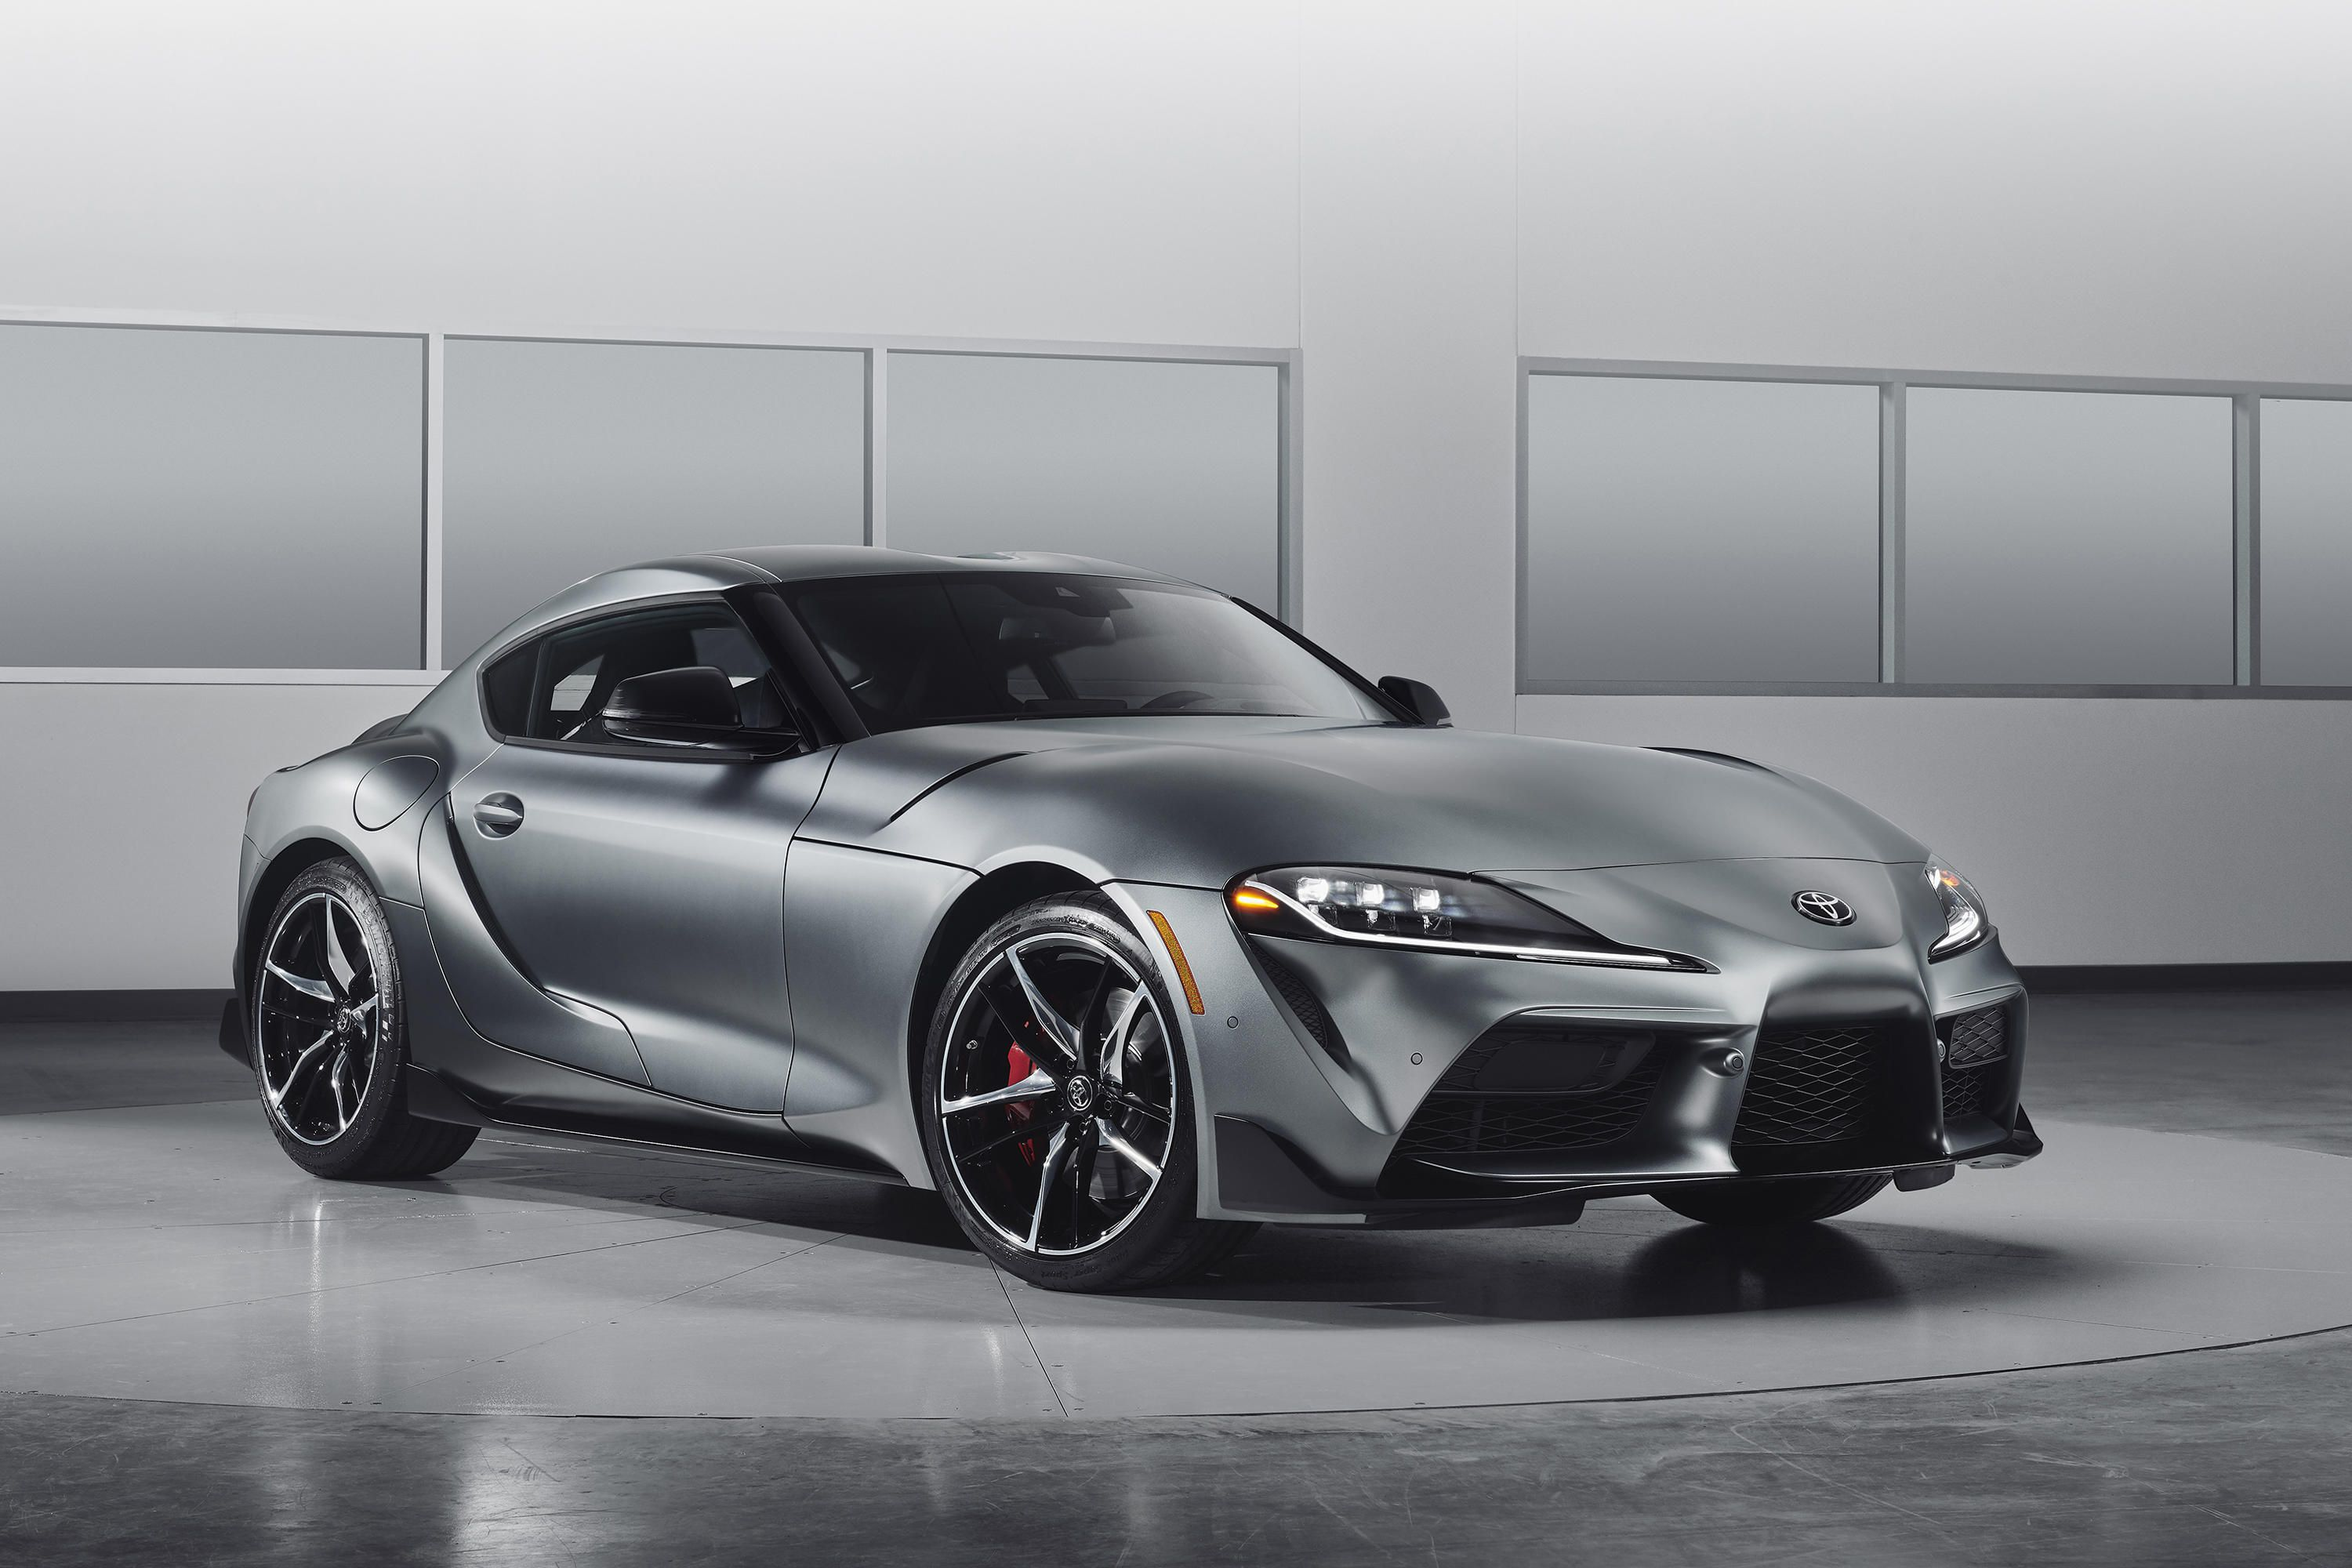 79 All New 2020 Toyota Supra Release Date and Concept